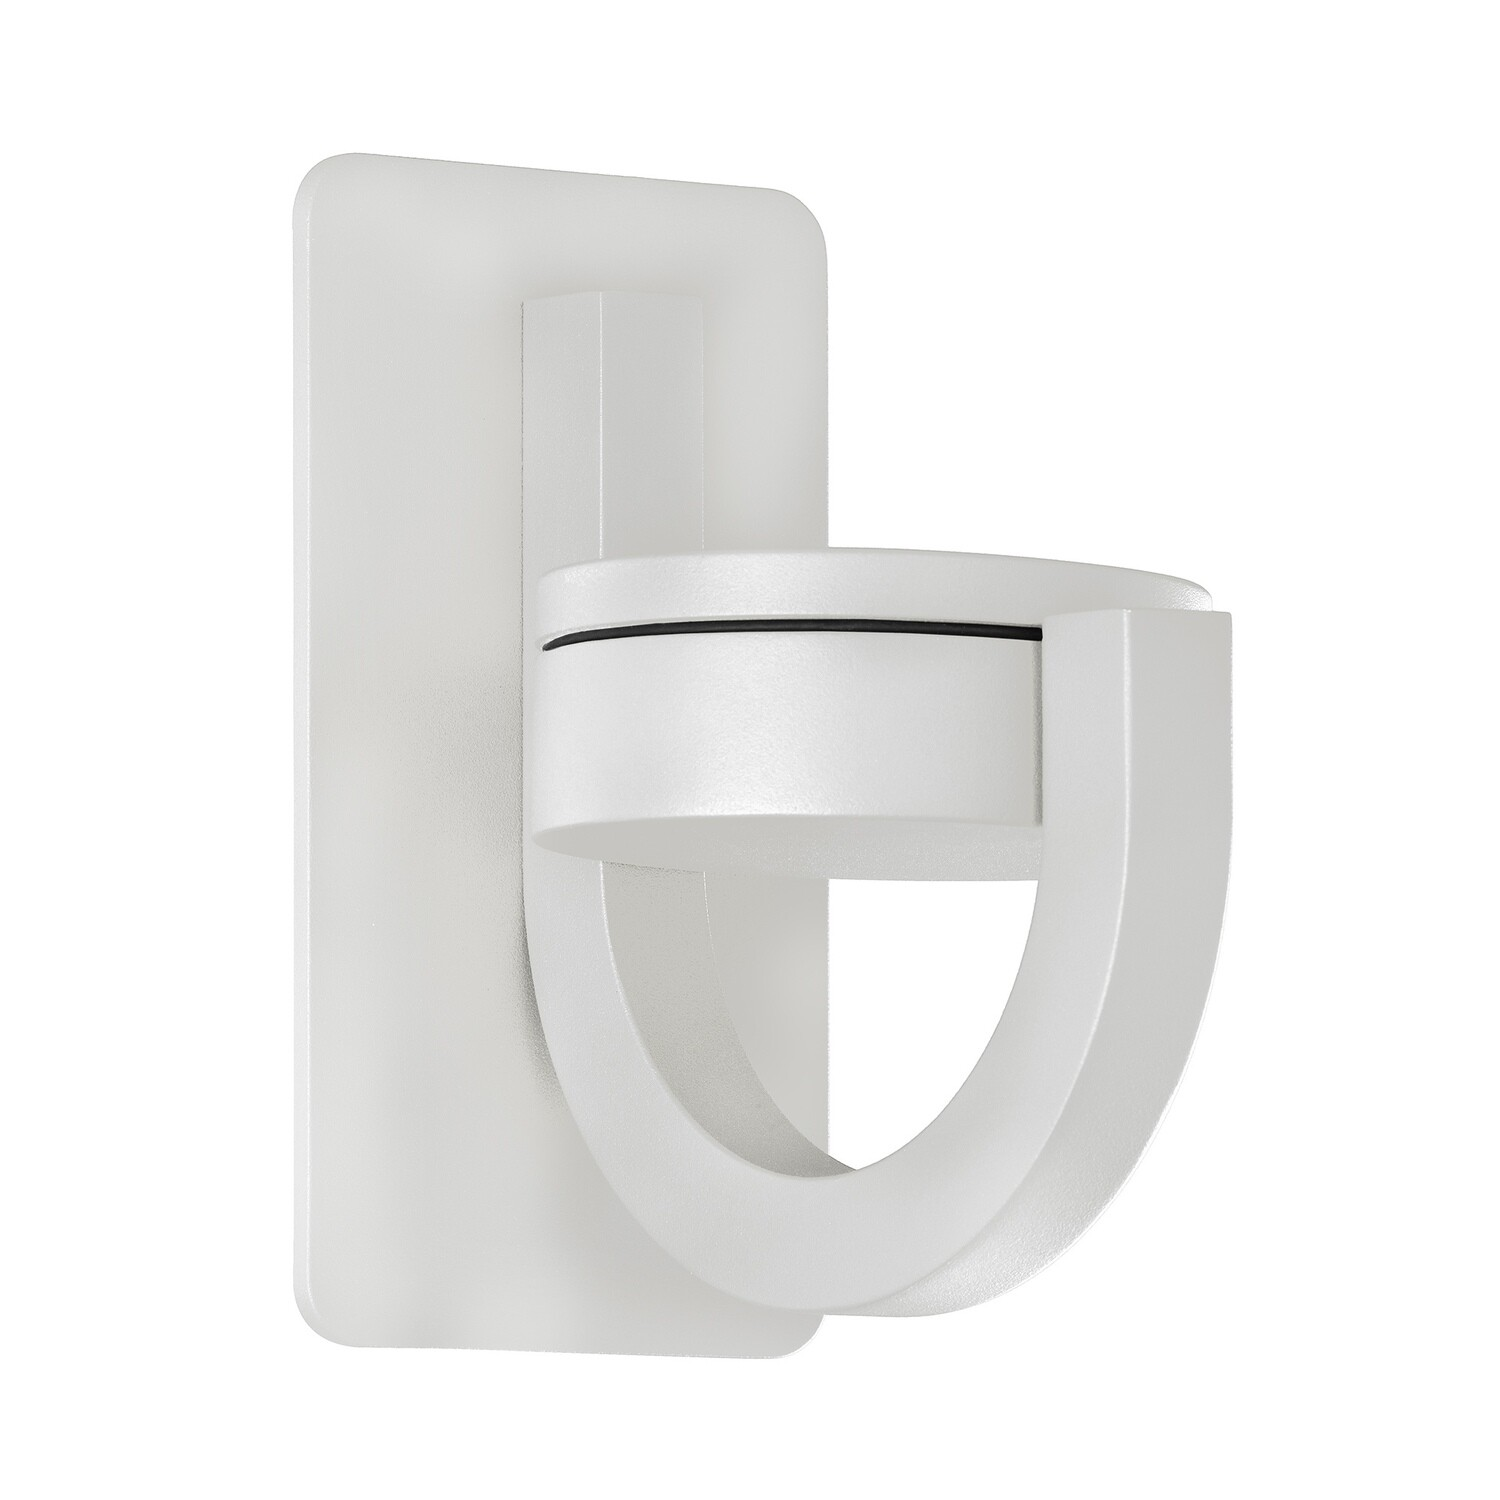 Iguazu Wall Lamp, 1xGX53, IP54, White